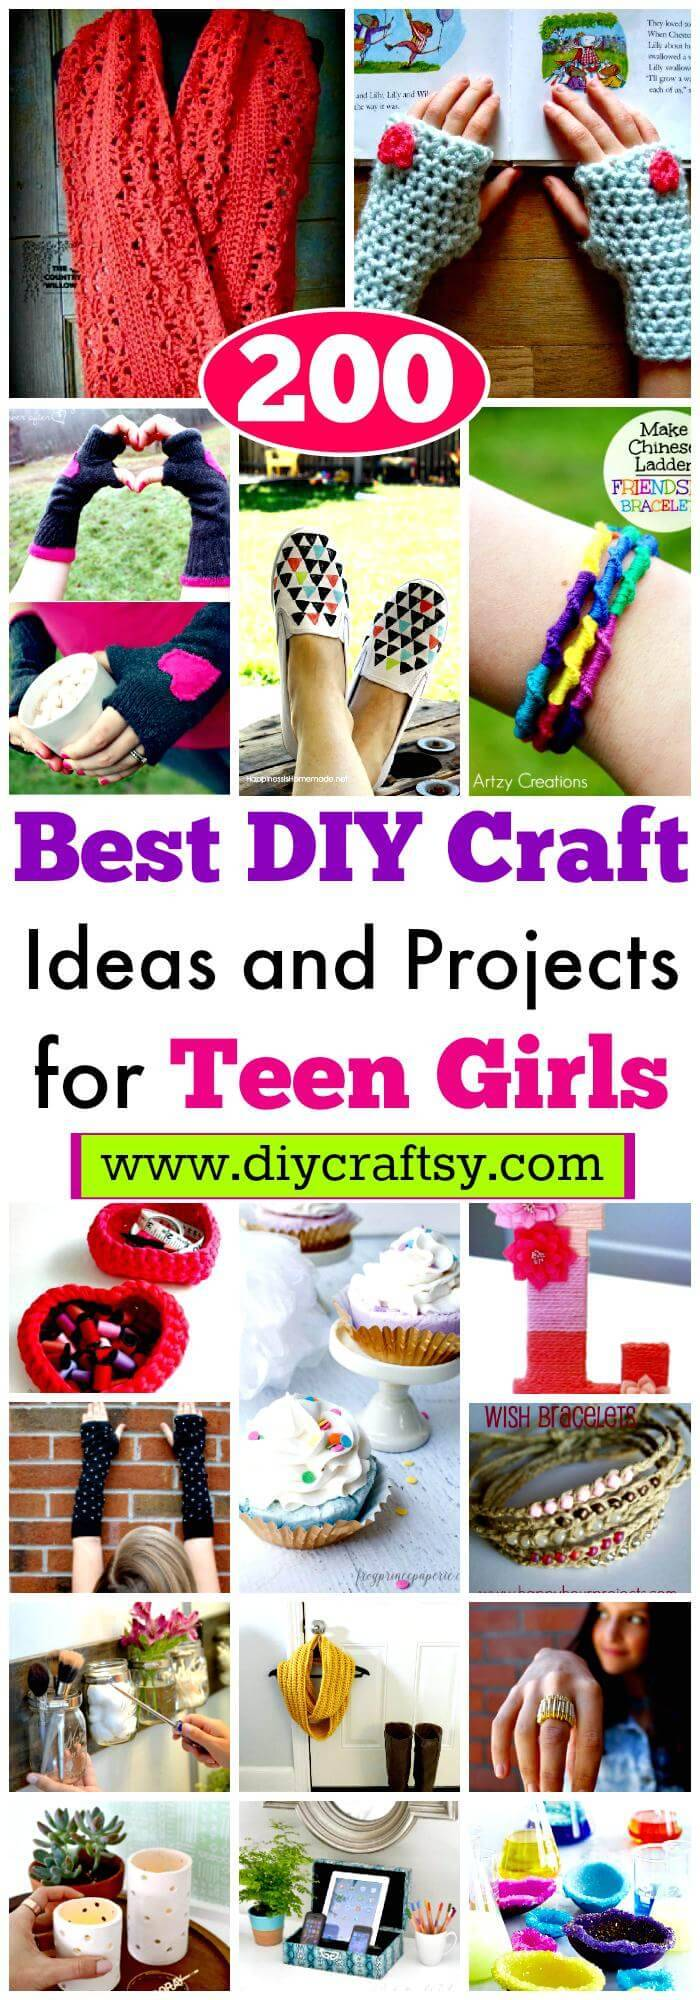 craft ideas for ladies 200 best diy craft ideas and projects for teen diy 3863